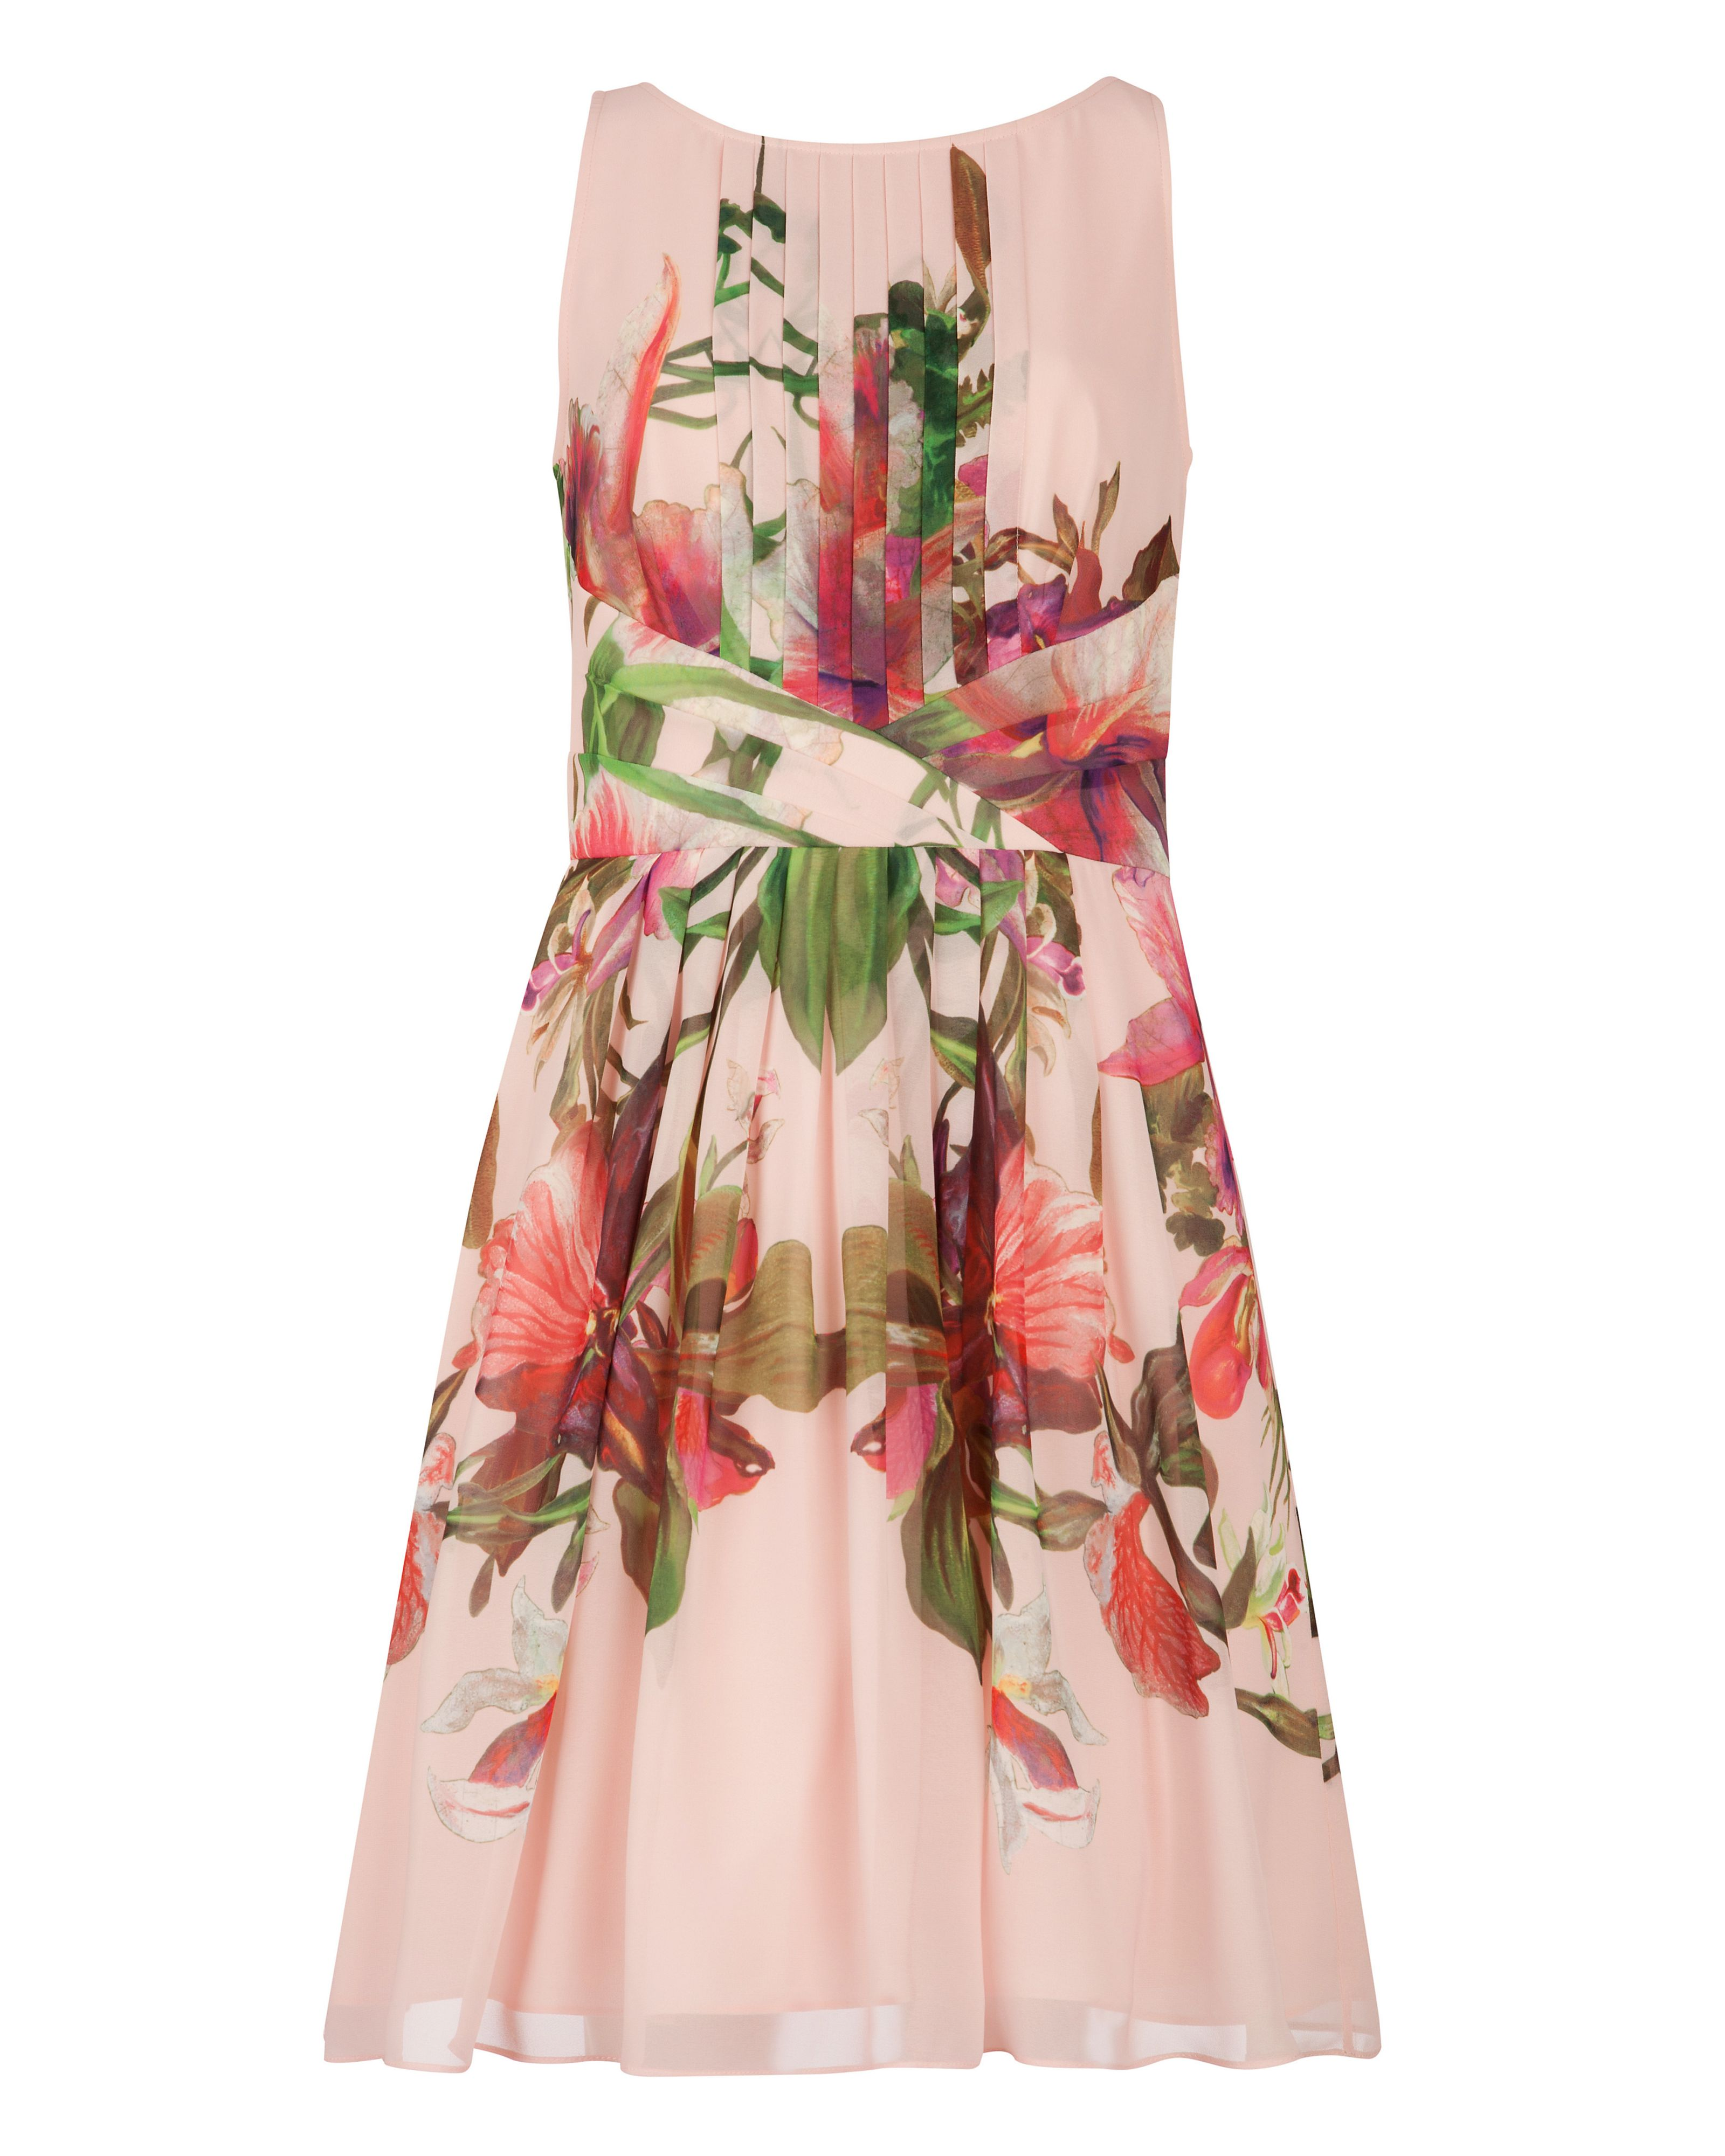 Carlii symmetrical orchid floral dress